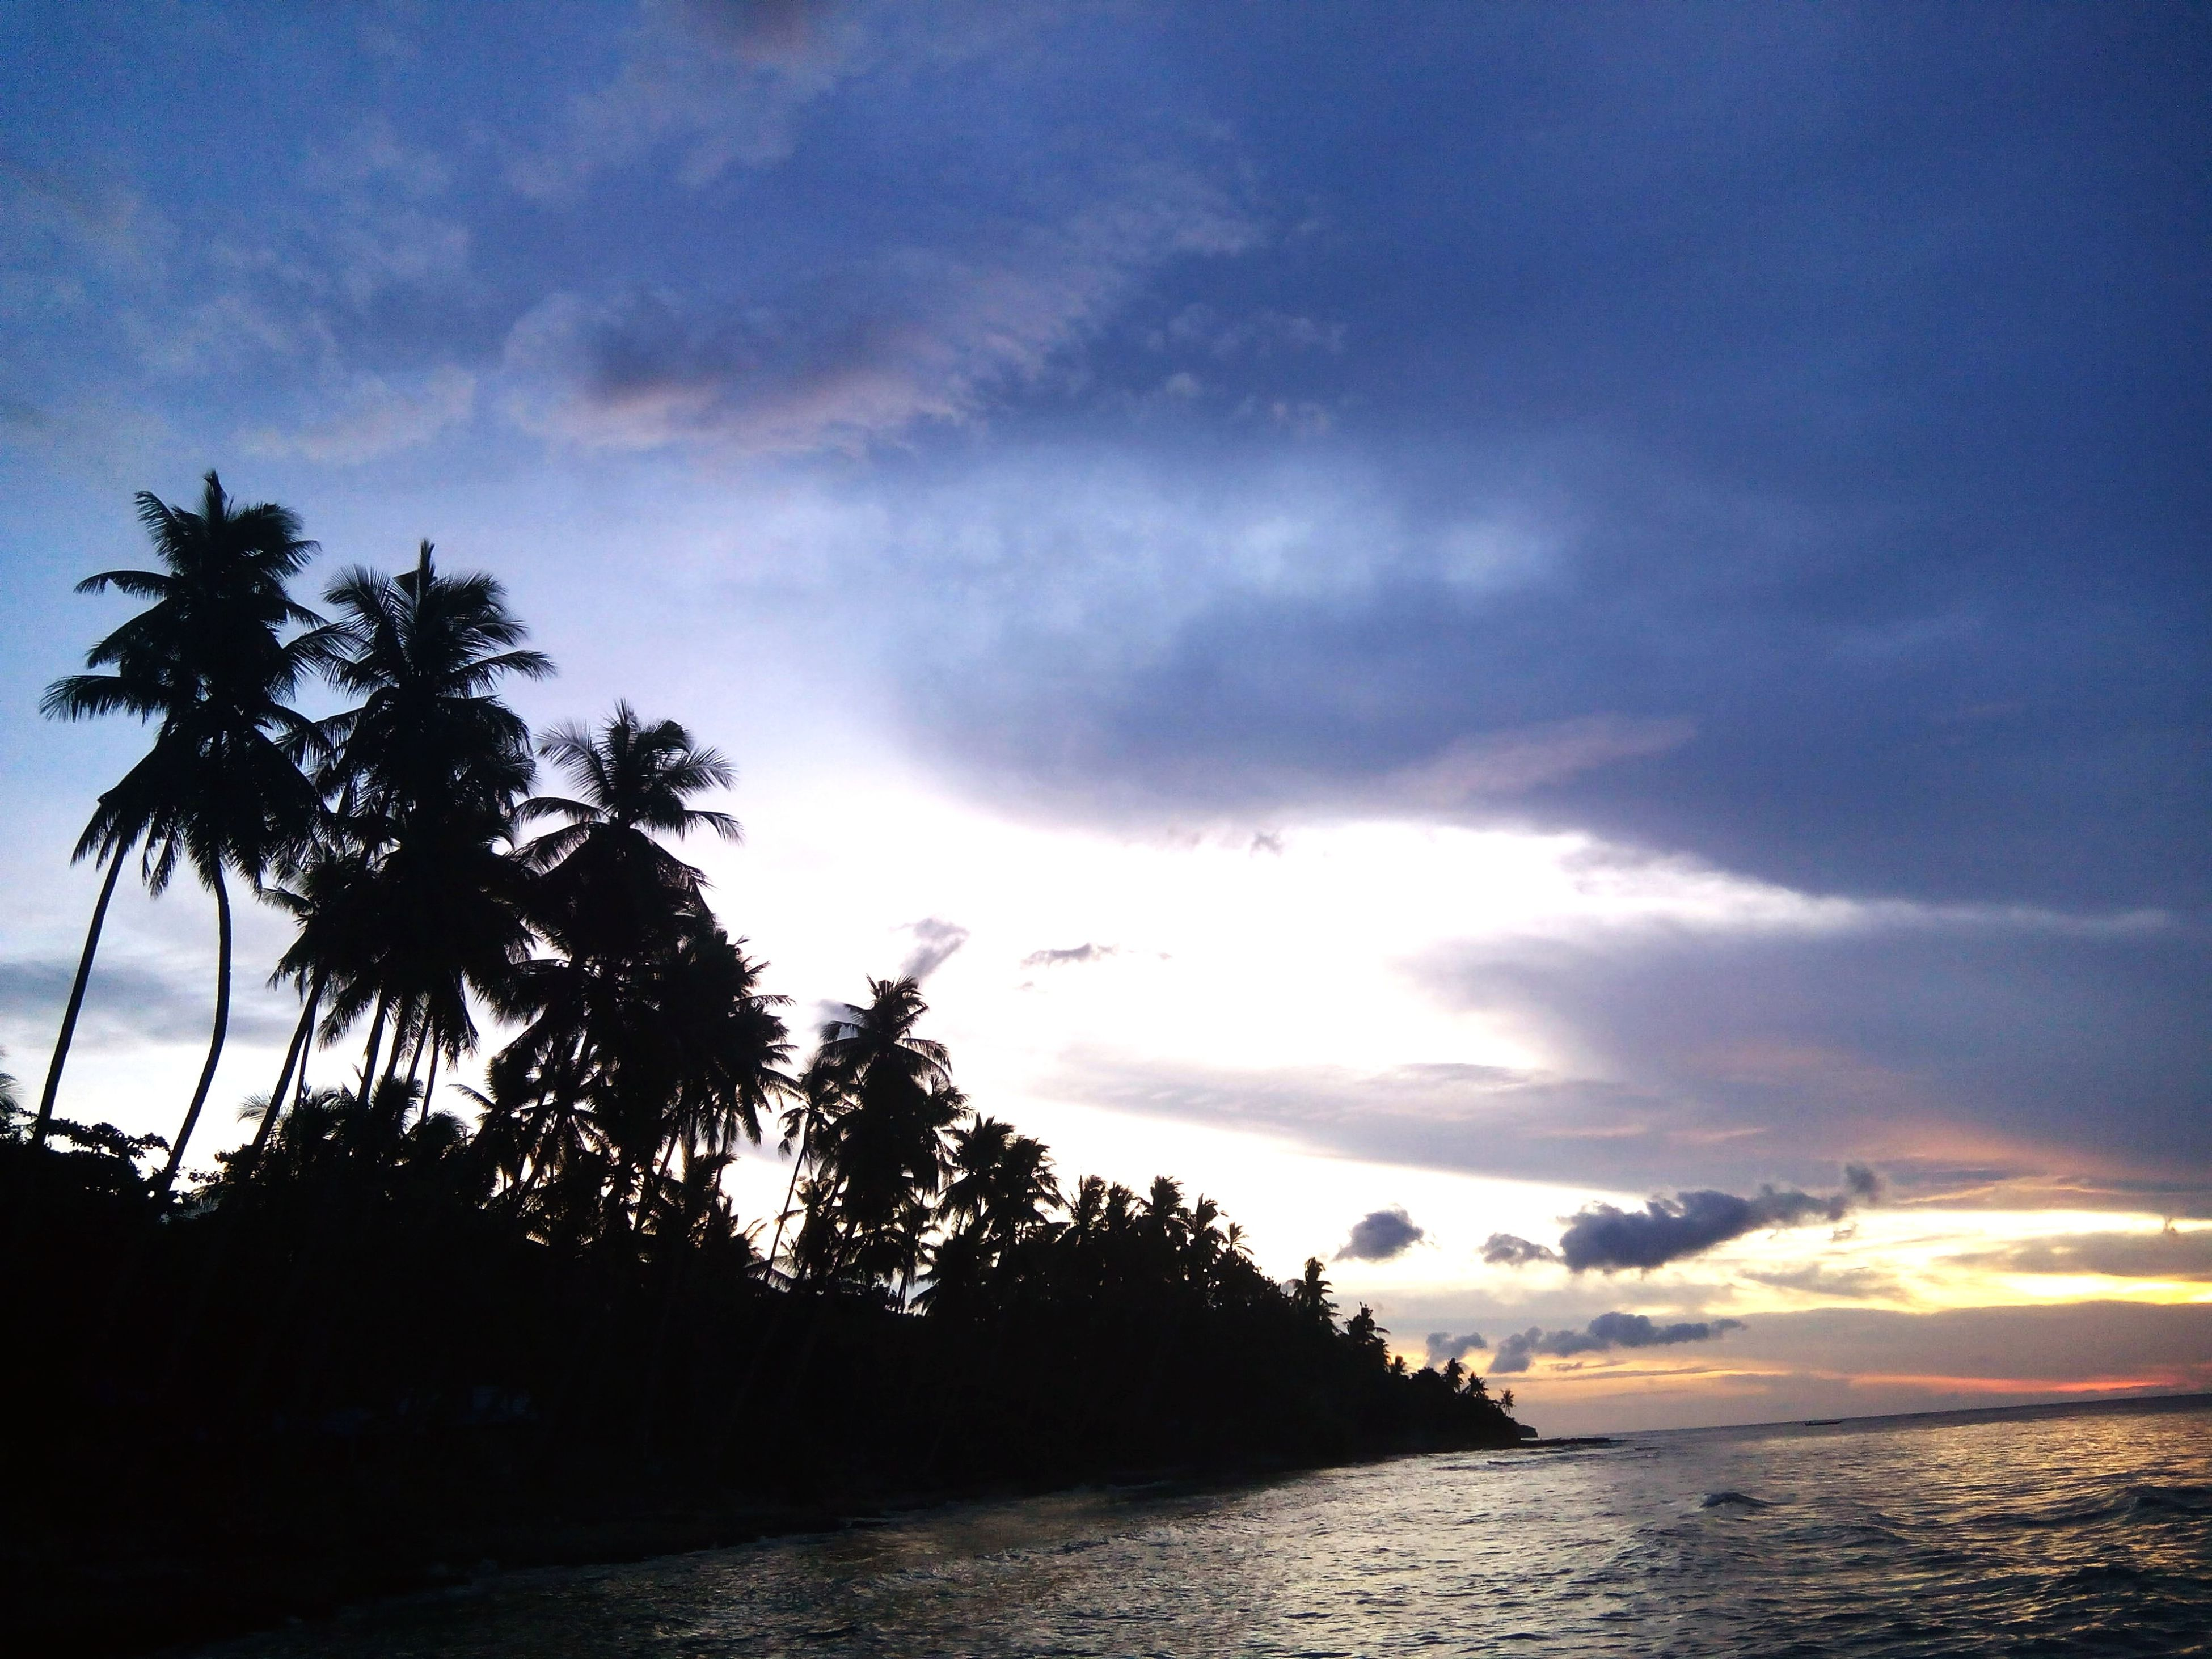 sky, water, sea, tranquil scene, scenics, tranquility, silhouette, tree, beauty in nature, palm tree, sunset, cloud - sky, horizon over water, nature, cloud, idyllic, waterfront, cloudy, beach, dusk